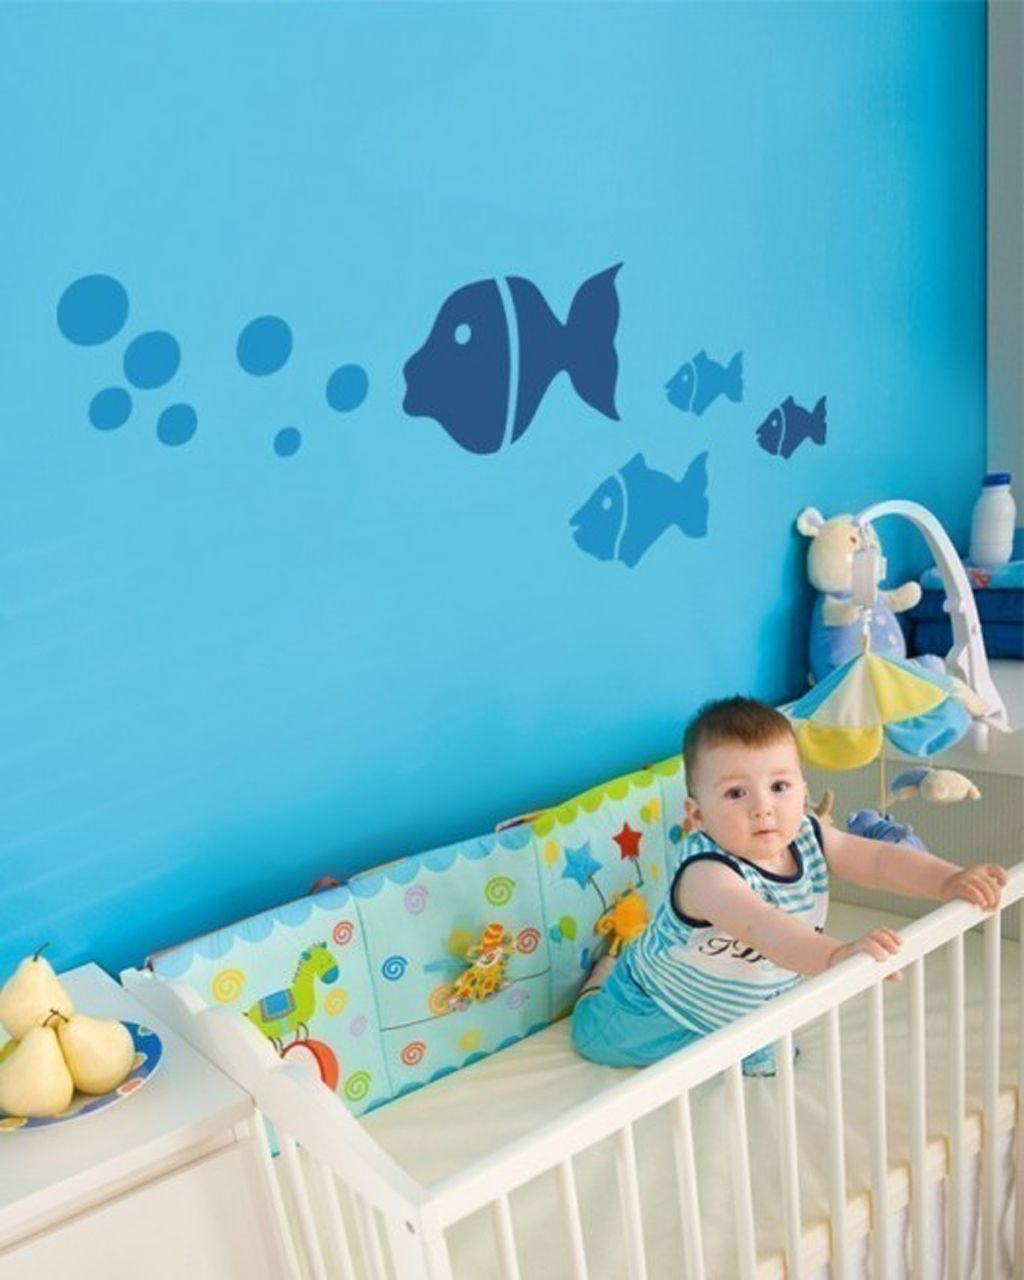 Decorating Kids Room With Wall Stickers Cool Boys Room Wall Cool Girls Room  Wall Cool Nursery Wall StickersDecorating Your Part 60